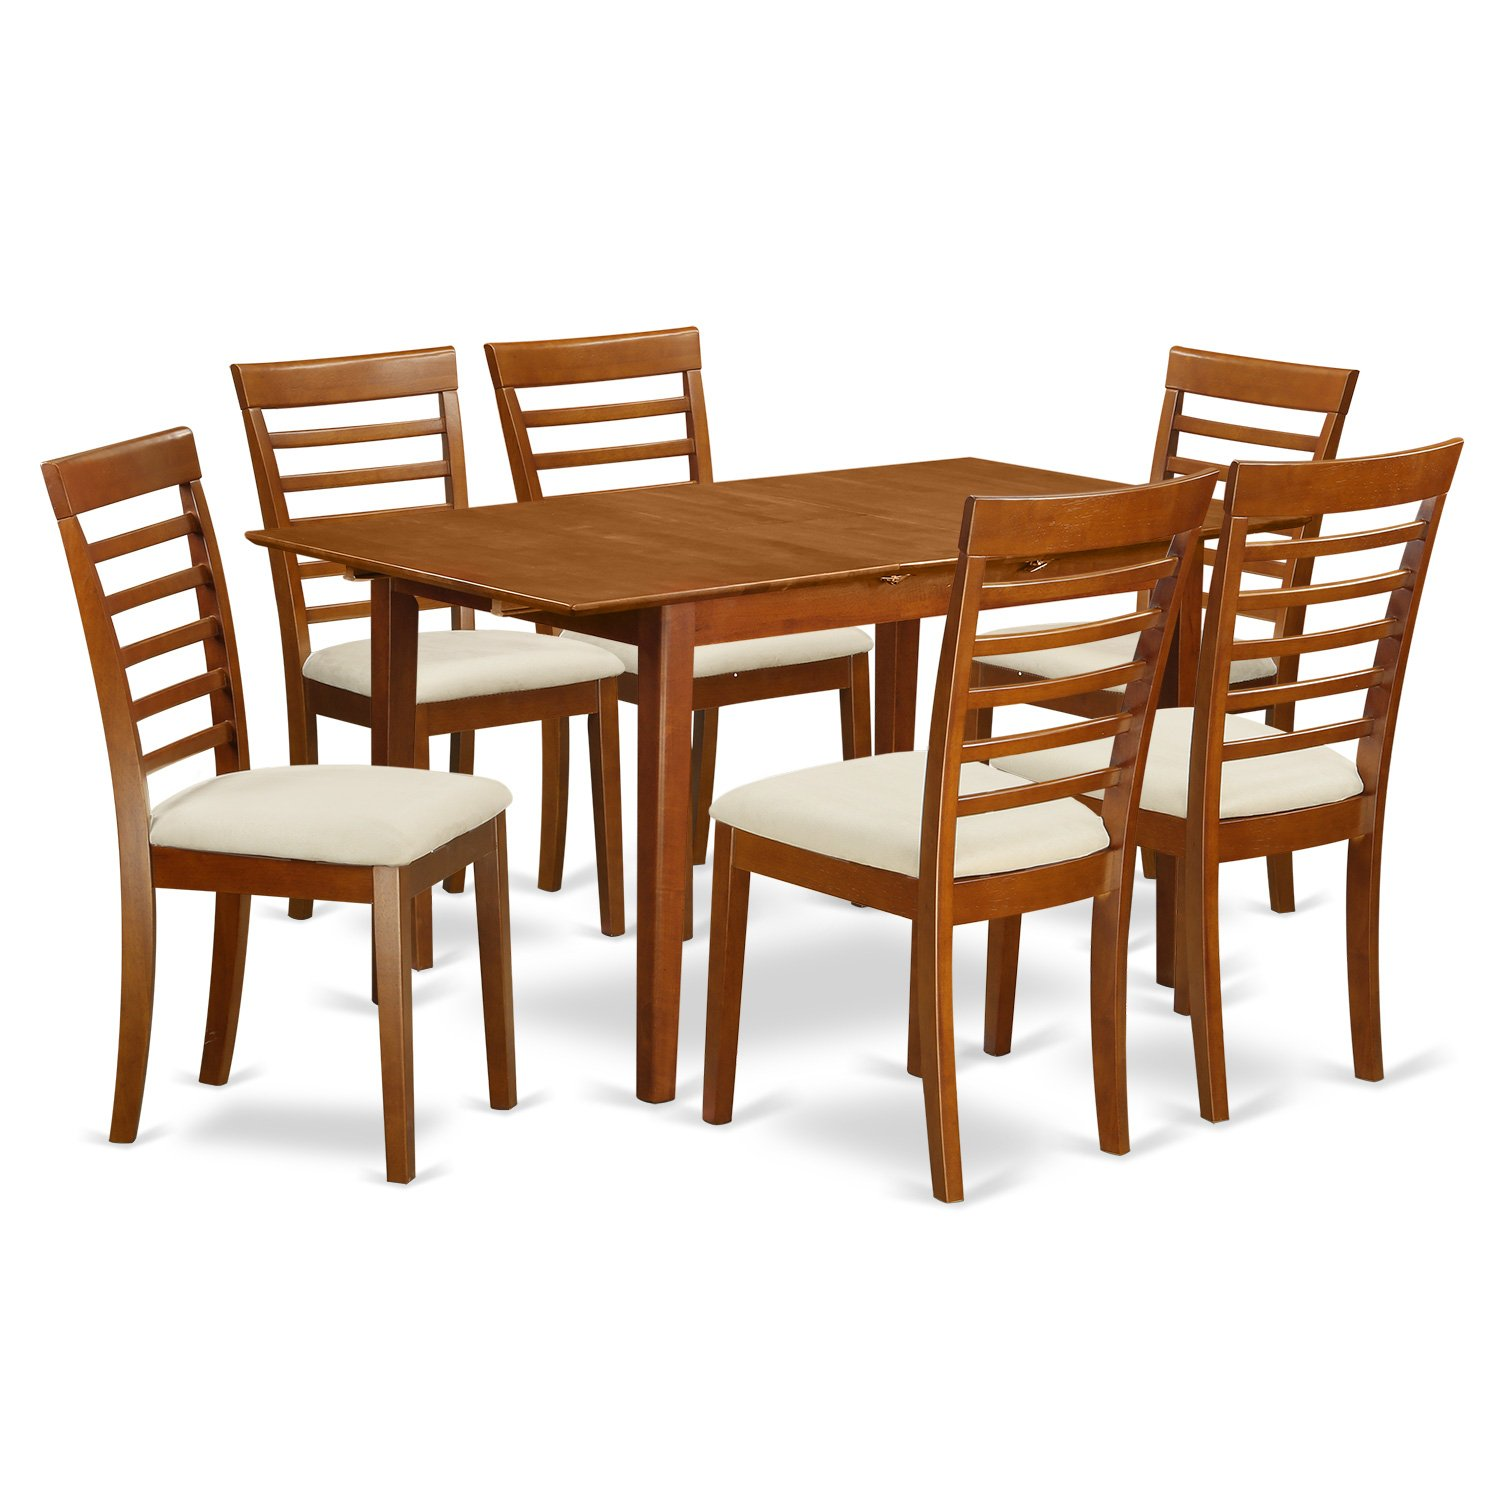 PSML7-SBR-C 7 Pc Table and chair set – Table and 6 Kitchen Dining Chairs